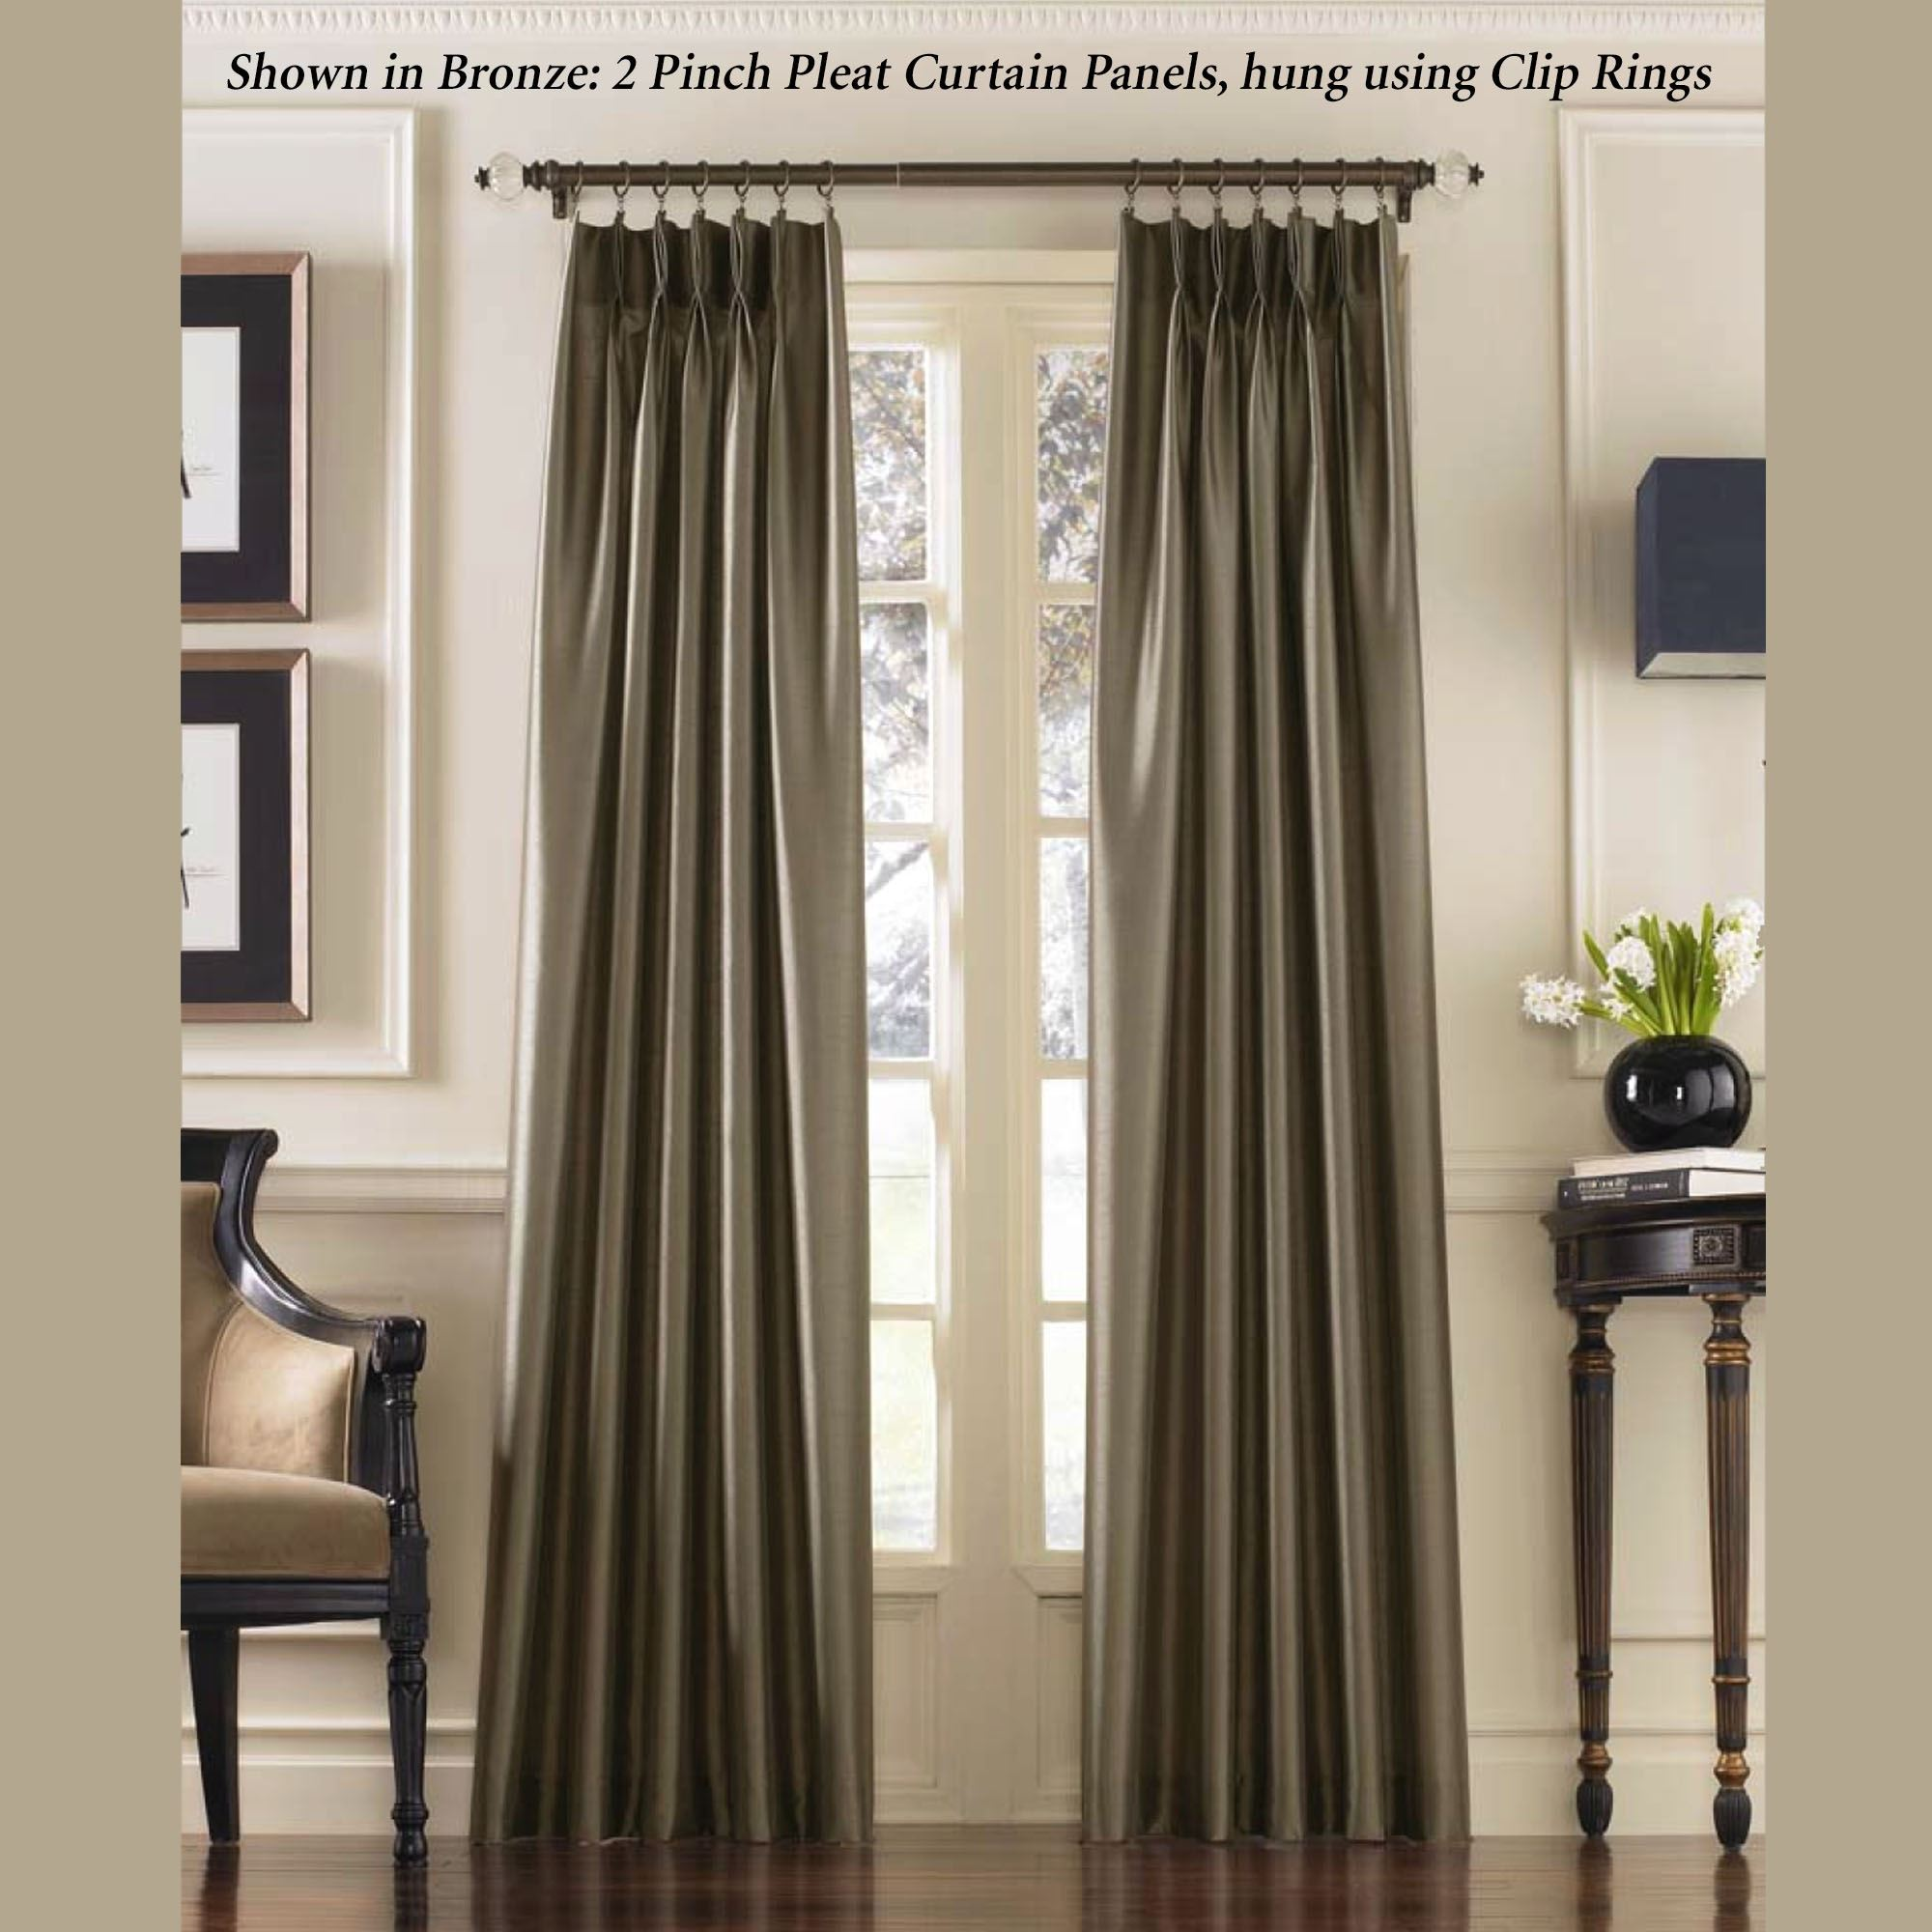 curtains silk curtain panels pleated panel info details china drapery sale pinch hiremail about french find